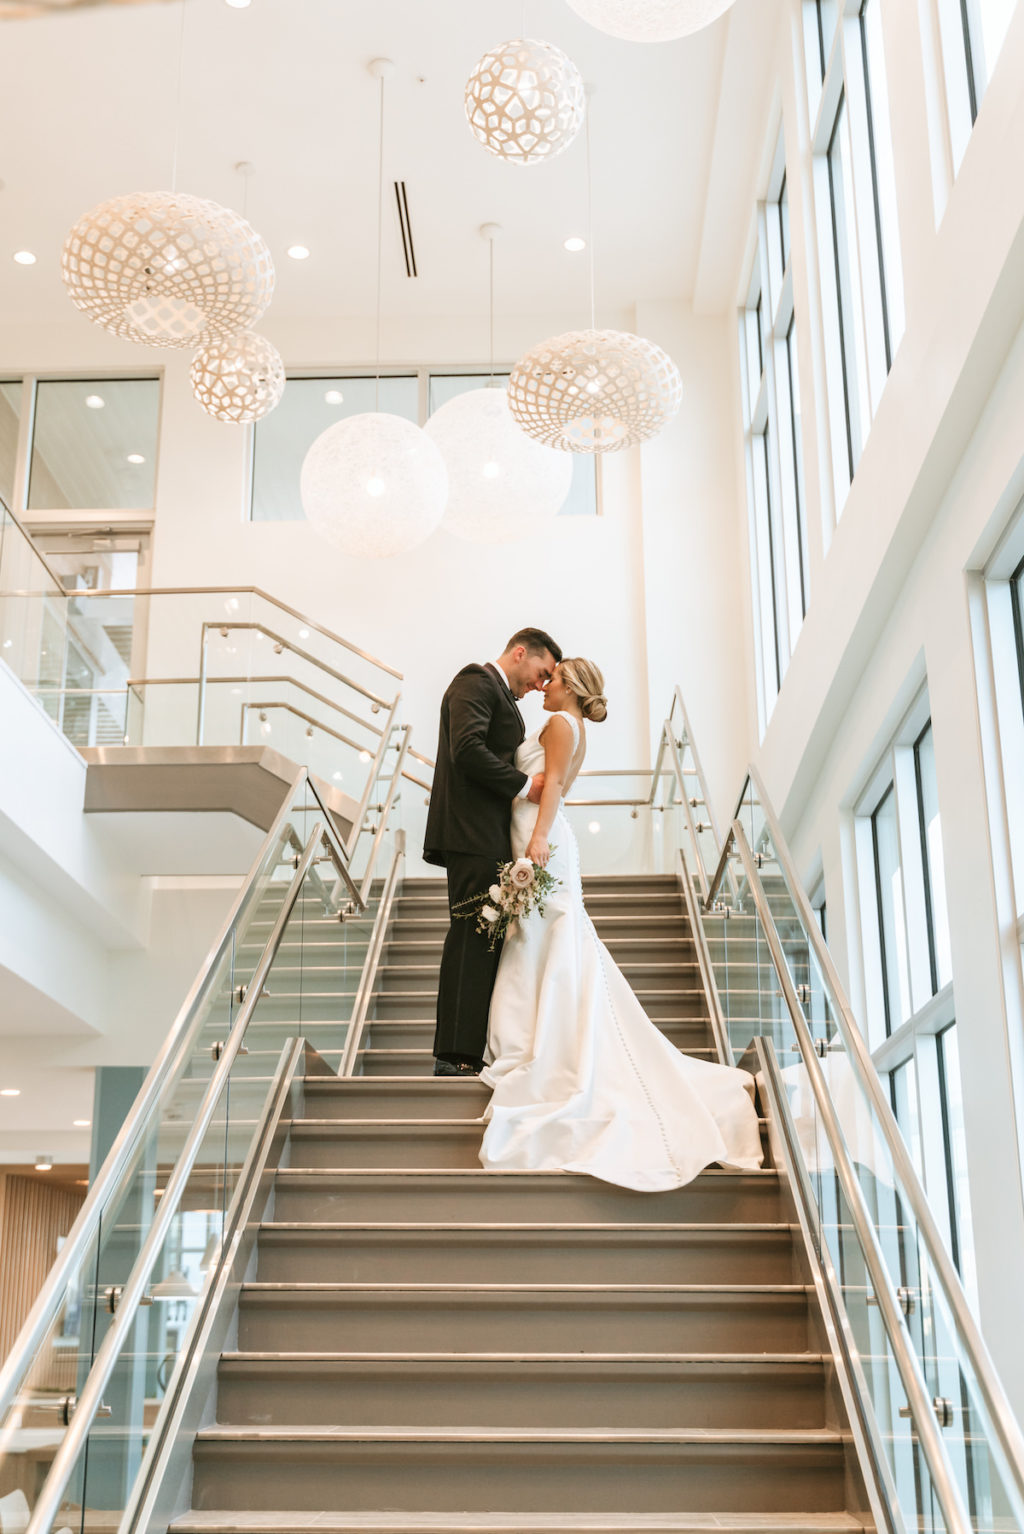 Bride and Groom Wedding Portrait on Staircase | Modern South Tampa Wedding Venue Aloft Midtown | Wedding Photographer and Videographer Bonnie Newman Creative | Wedding Dress Truly Forever Bridal